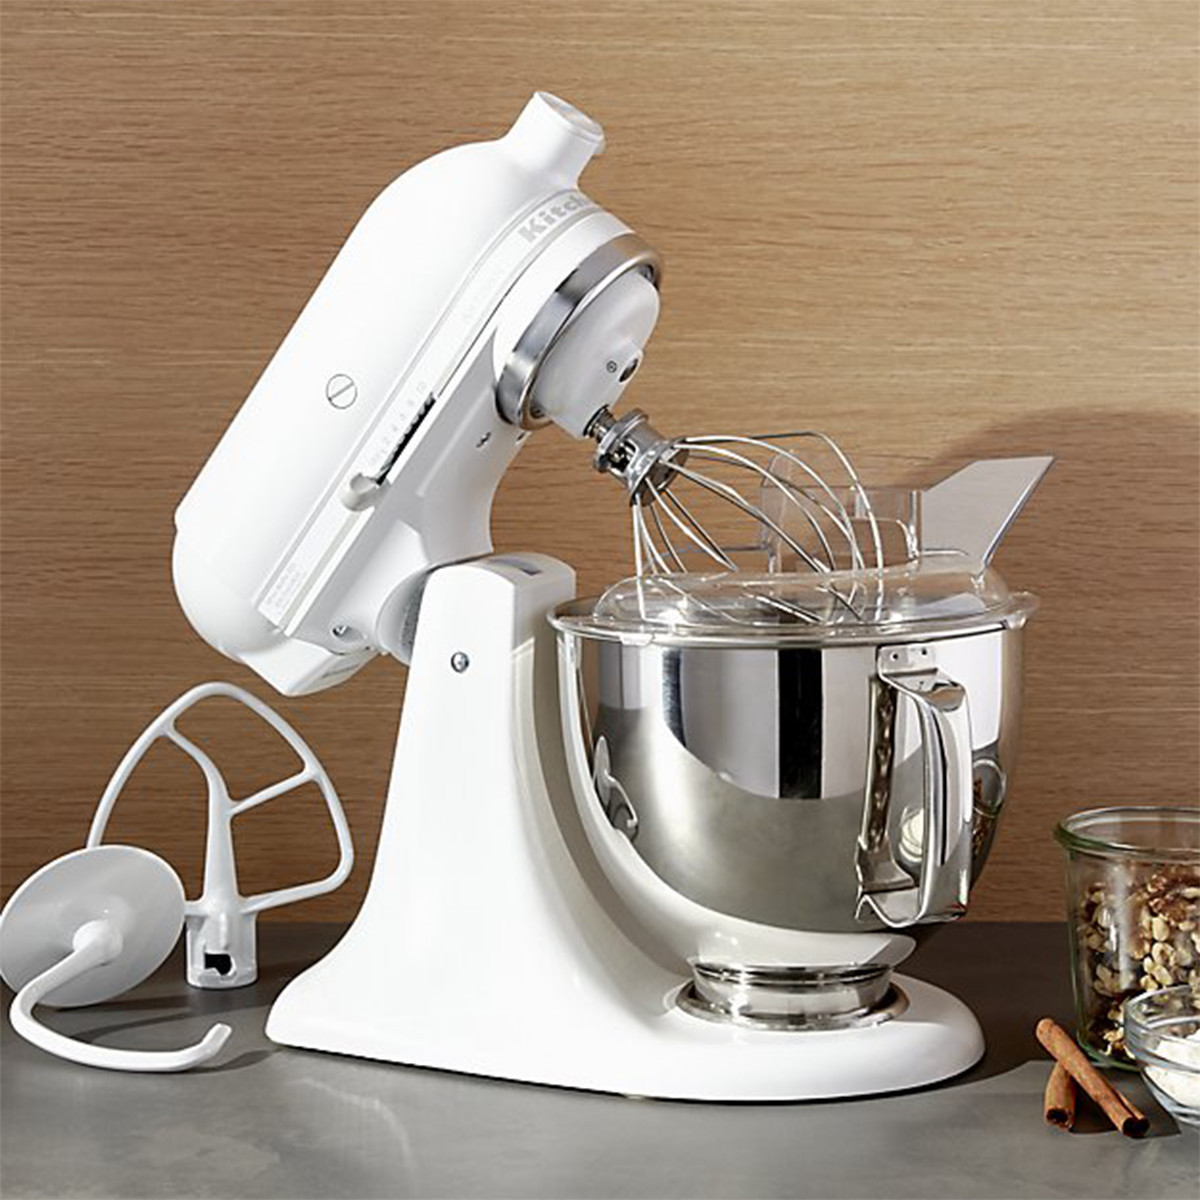 White KitchenAid stand mixer photo